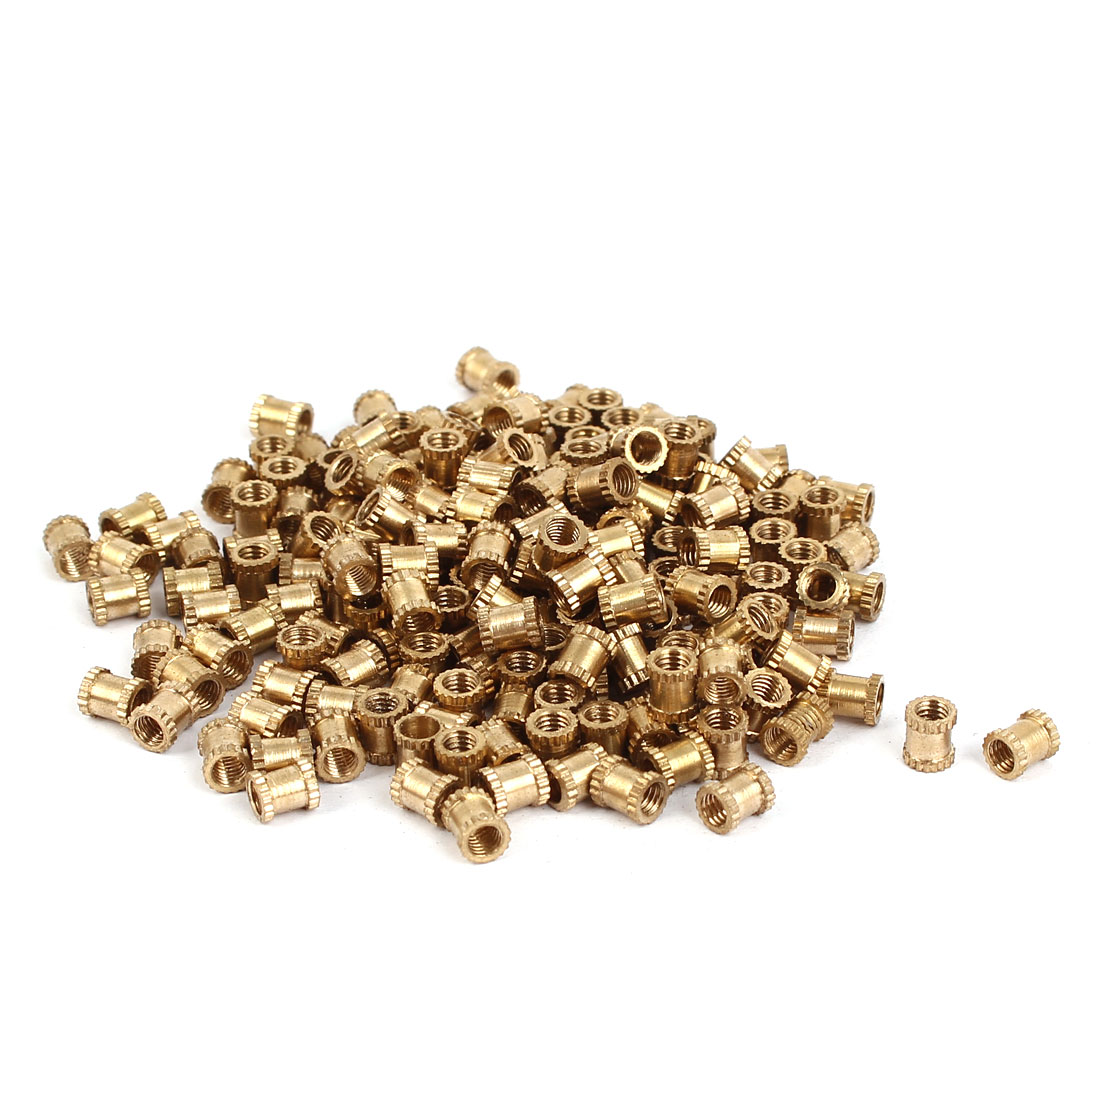 M3 x 5mm Brass Cylinder Injection Molding Knurled Threaded Embedment Nuts 200PCS